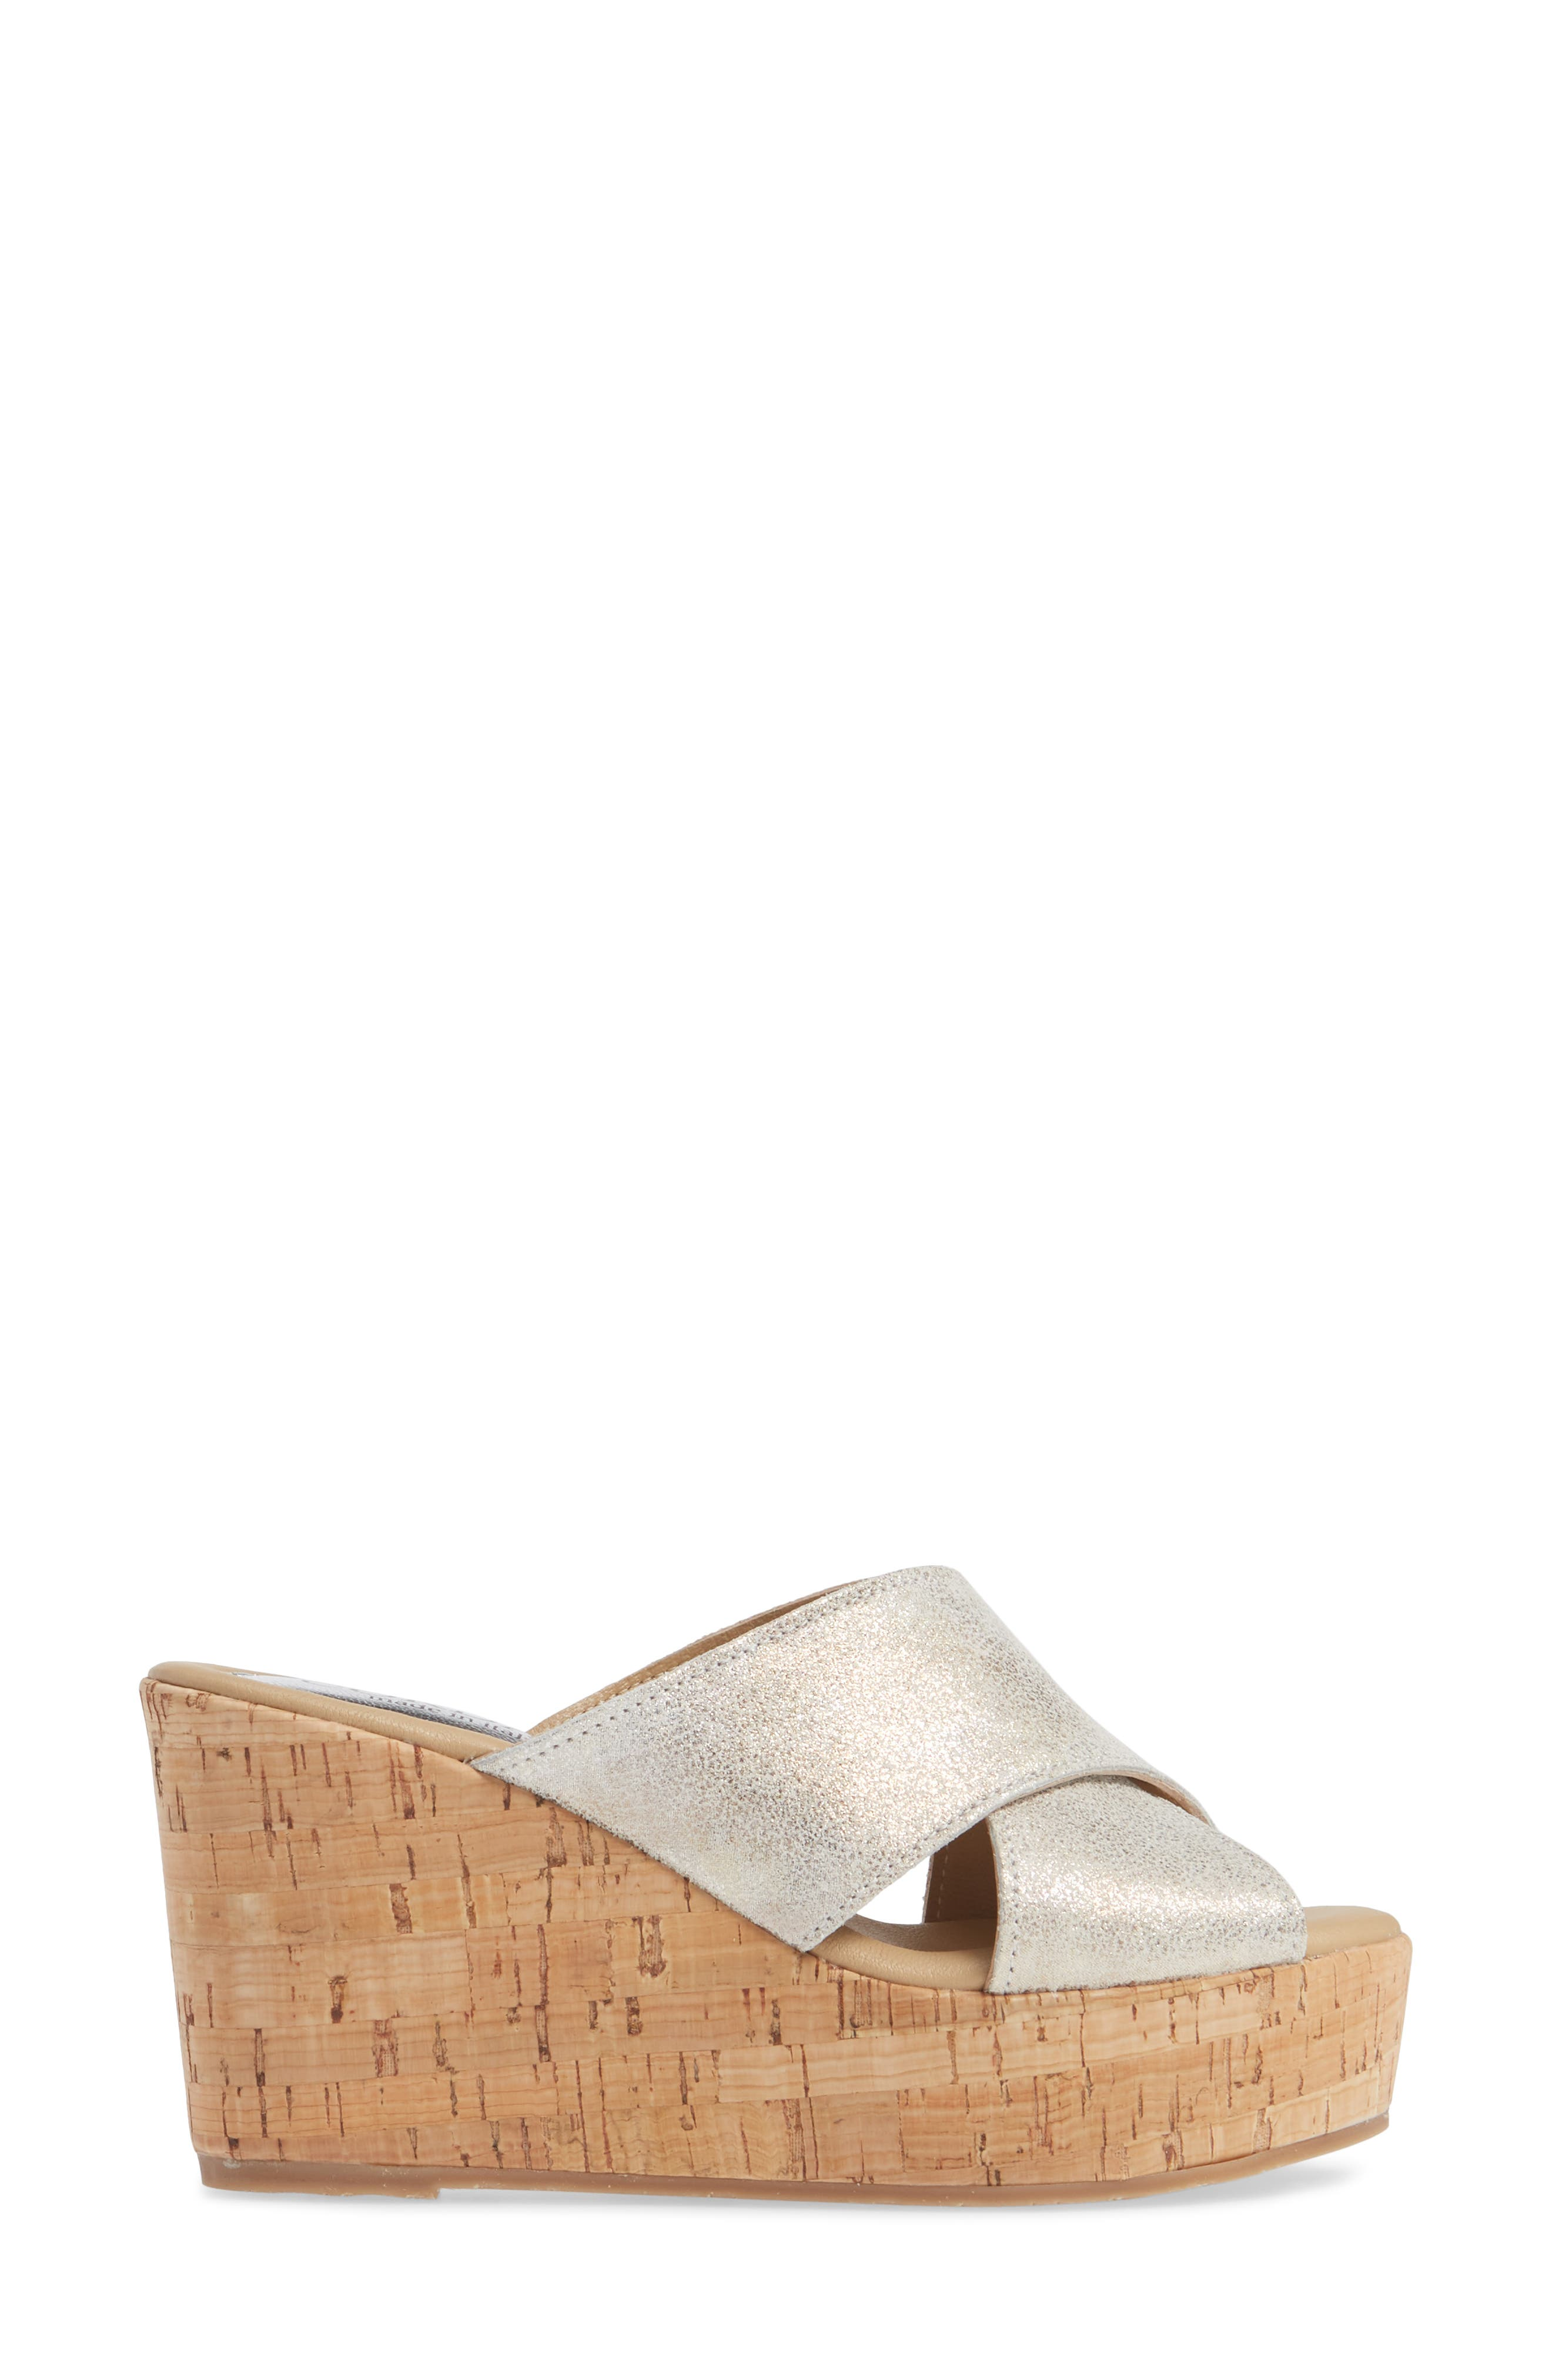 Jan Platform Wedge Slide Sandal,                             Alternate thumbnail 3, color,                             PEARL SUEDE